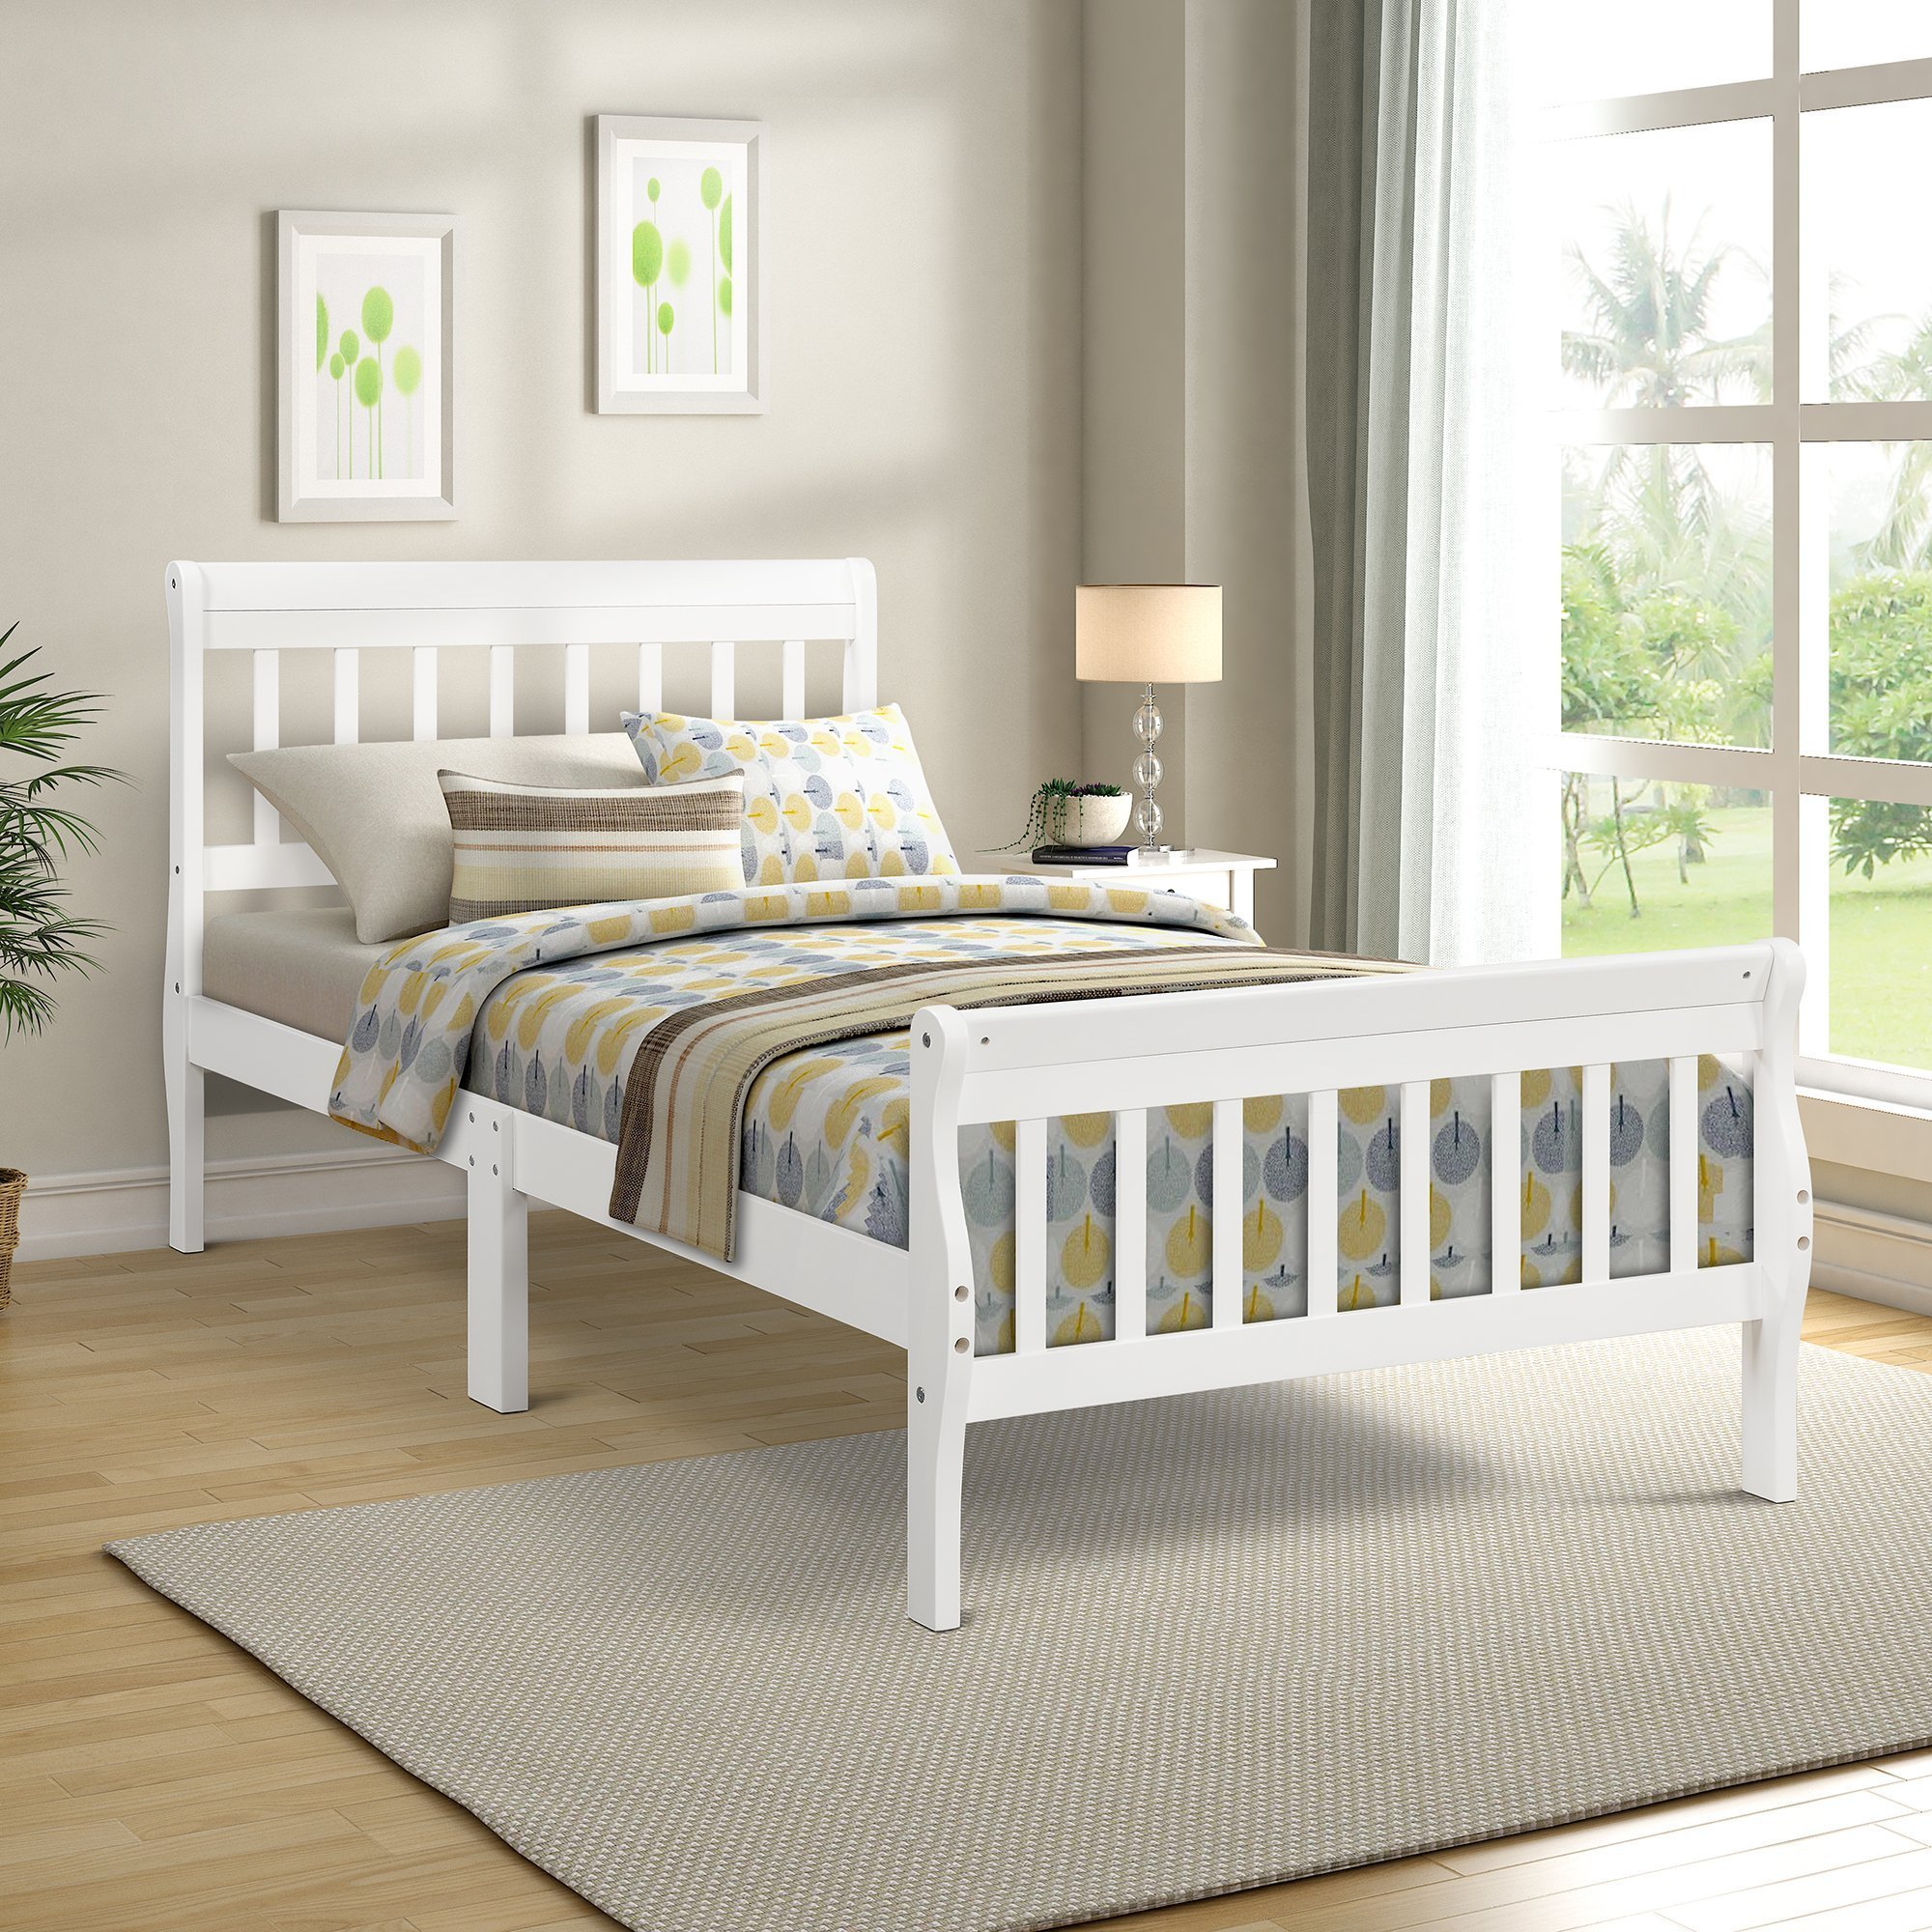 Wood Mattress Foundation Sleigh Bed Frame with Headboard ...